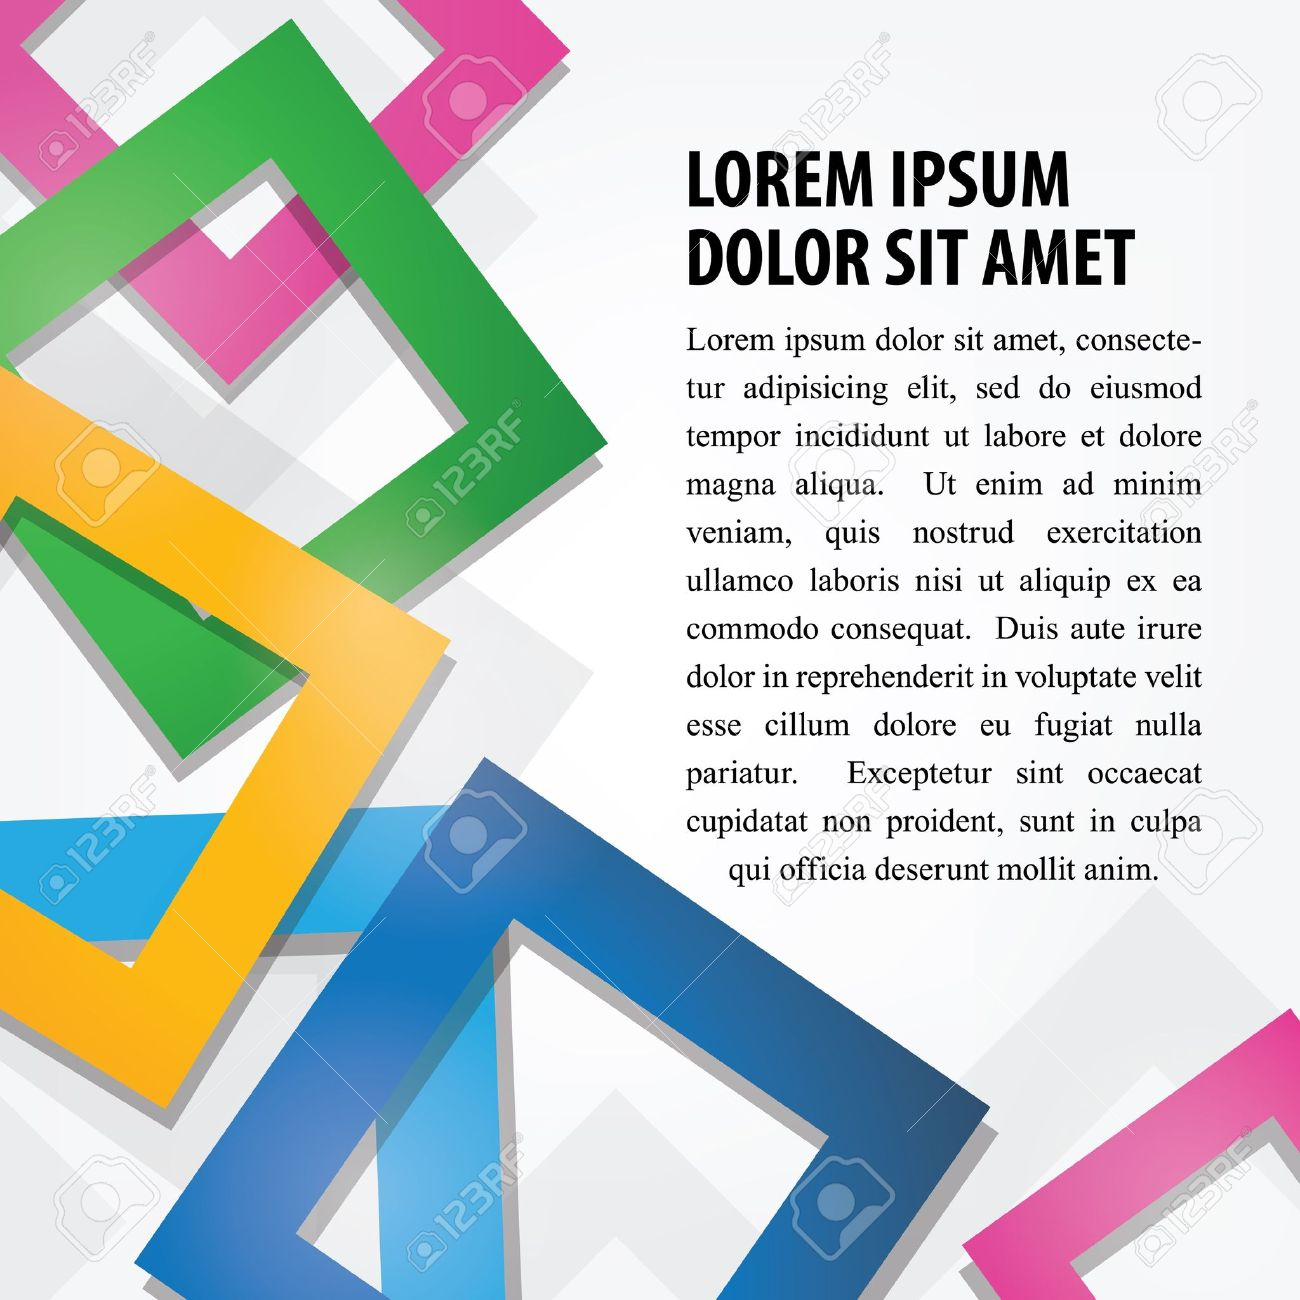 Colorful Abstract Square Background Stock Vector - 17154668